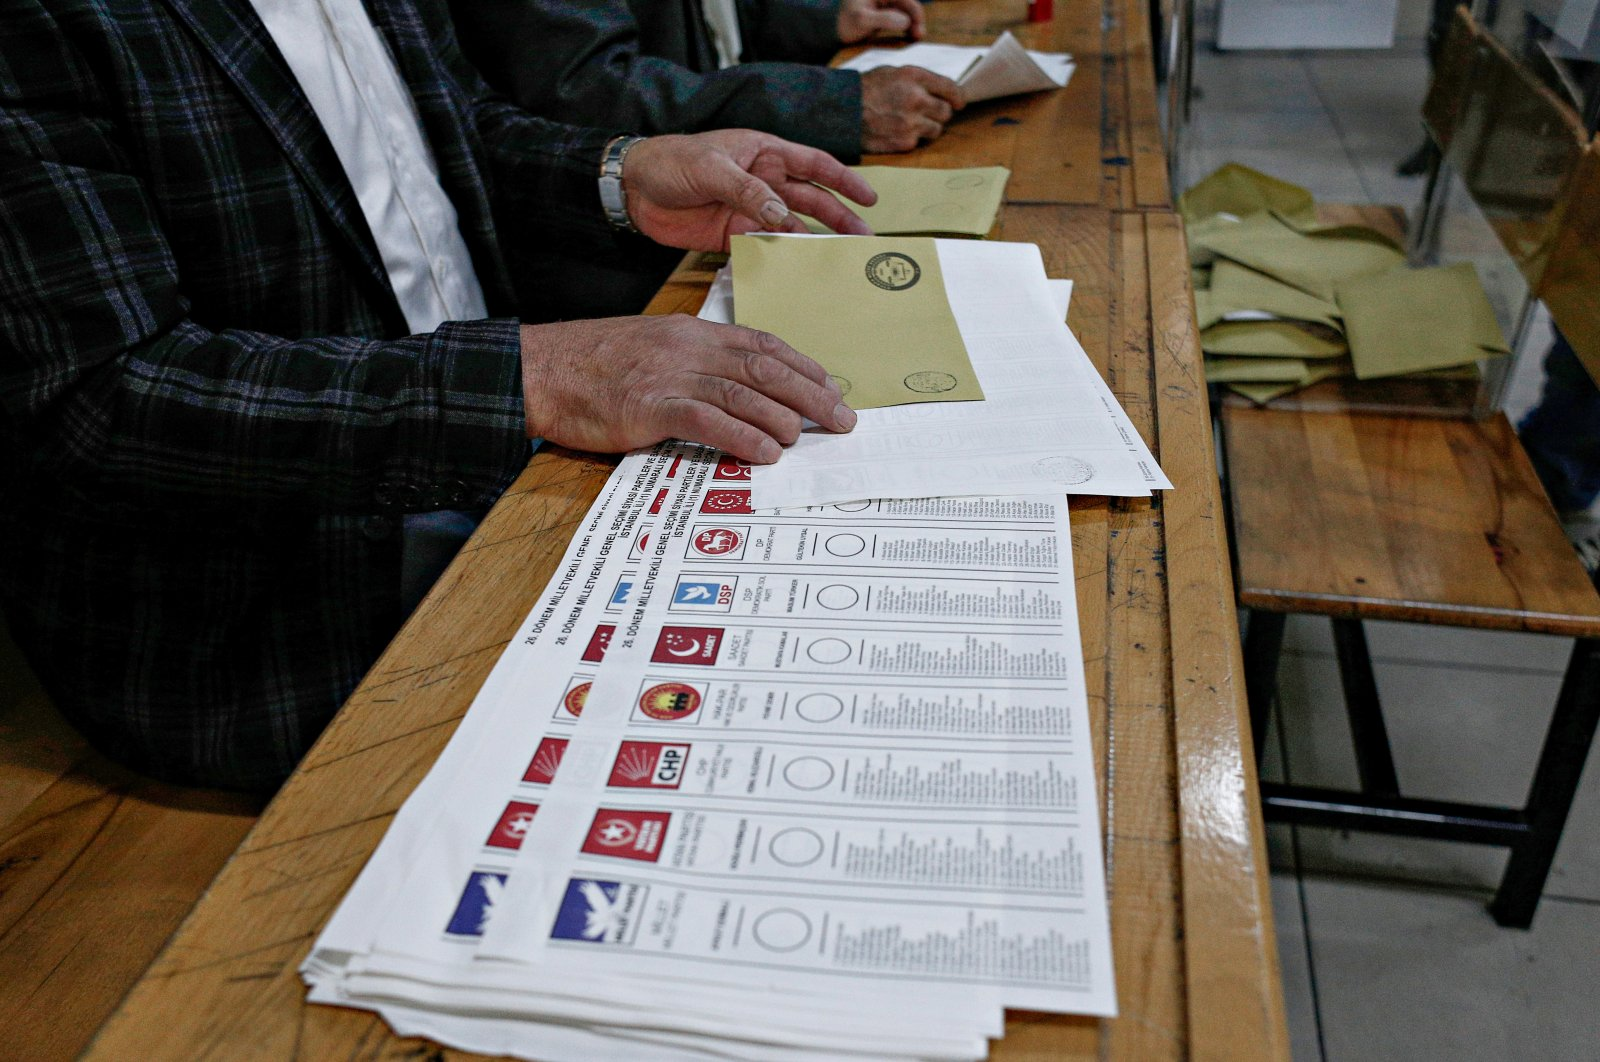 People vote in Turkish general elections at a polling station in Istanbul, Turkey, Nov. 1, 2015. (Shutterstock File Photo)